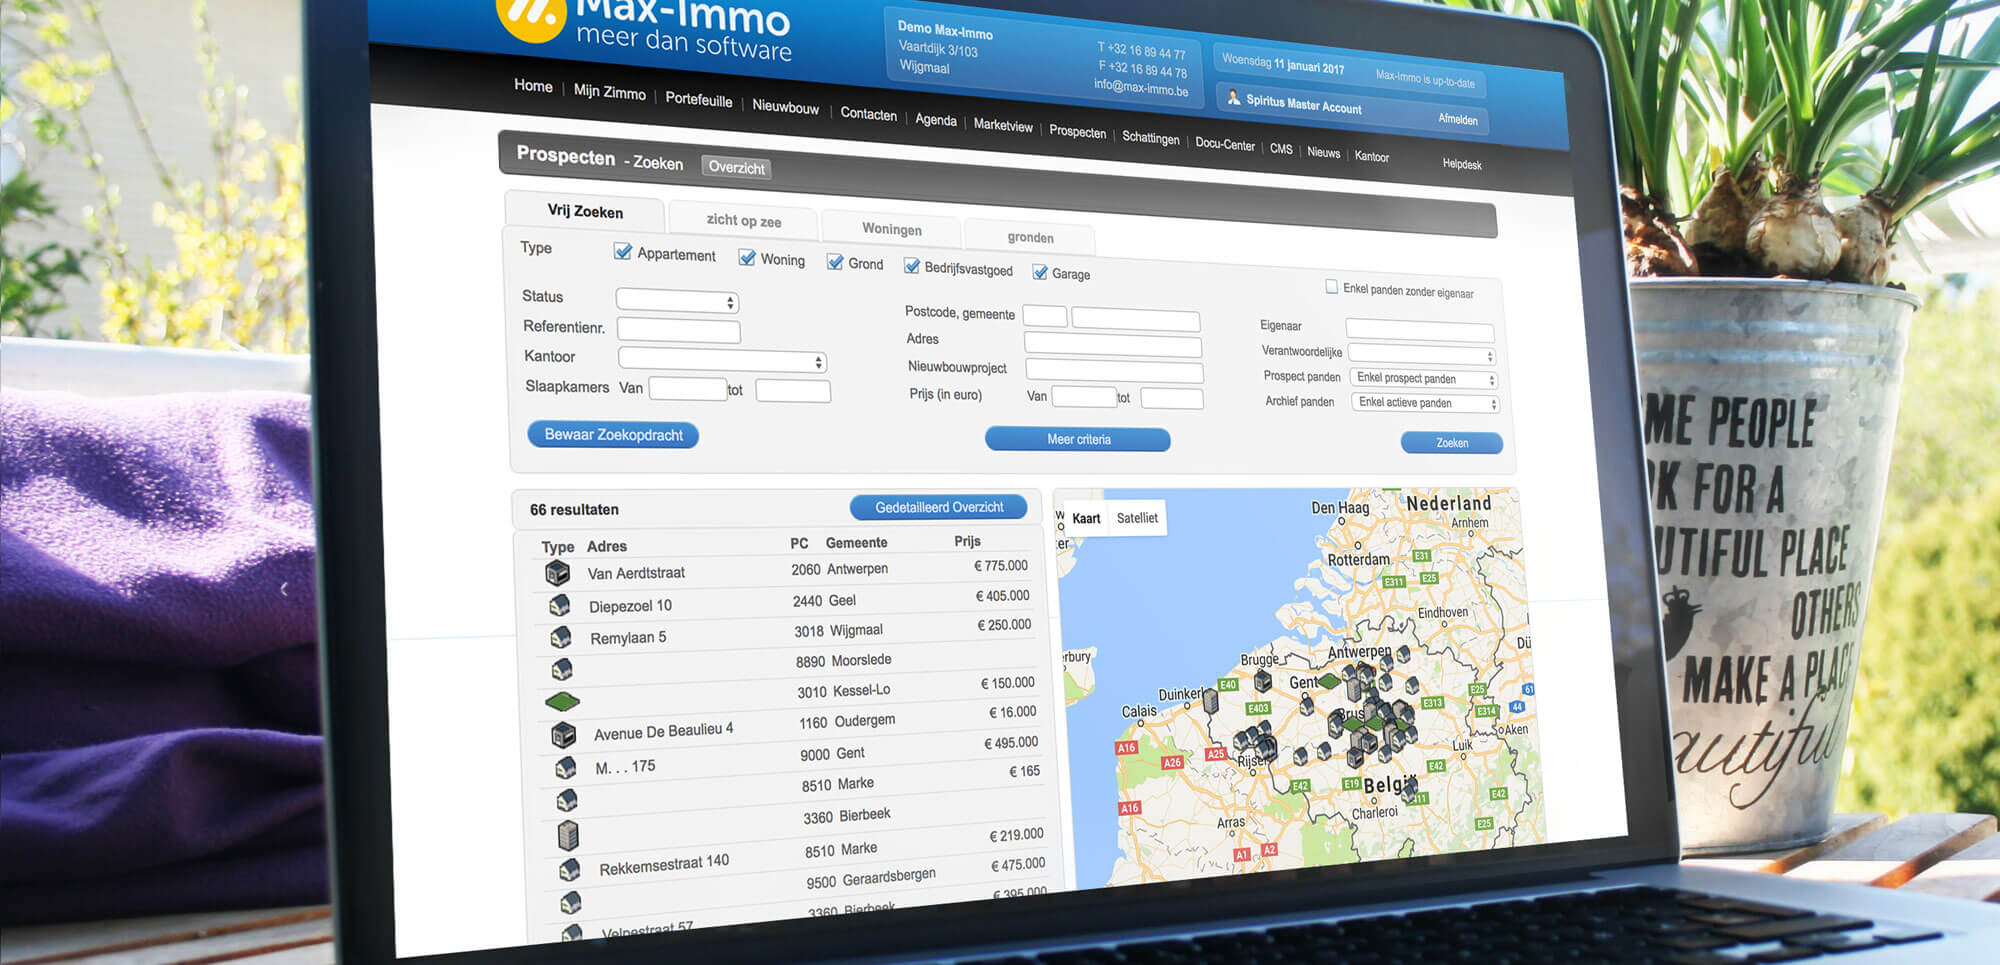 Max-Immo software prospect manager